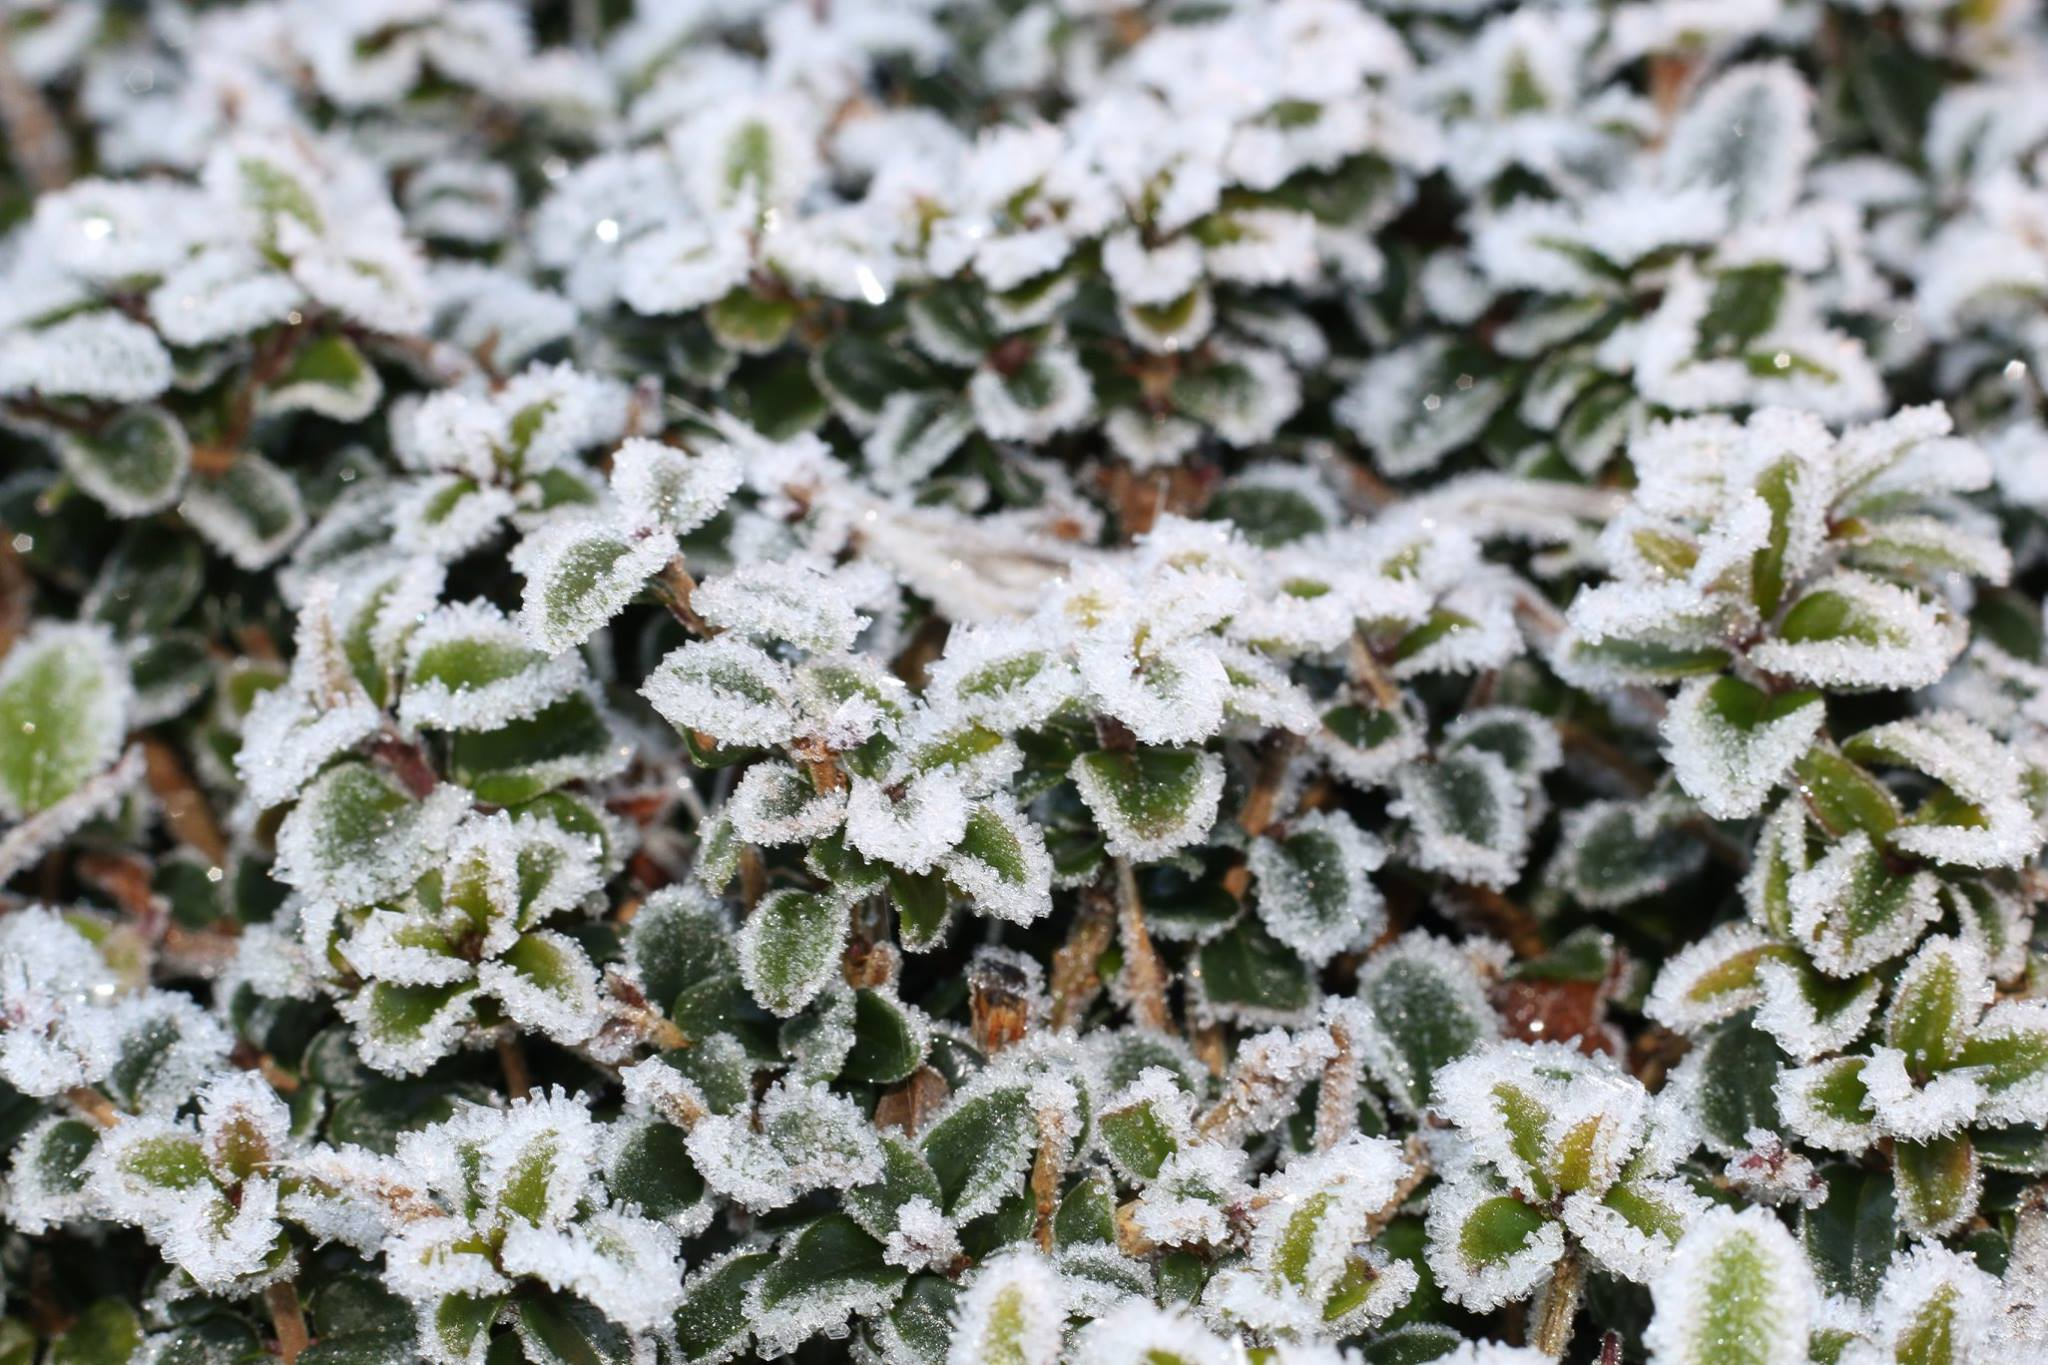 Frosty foliage photographed by Oxford Mail Camera Club member Paul Wakelin